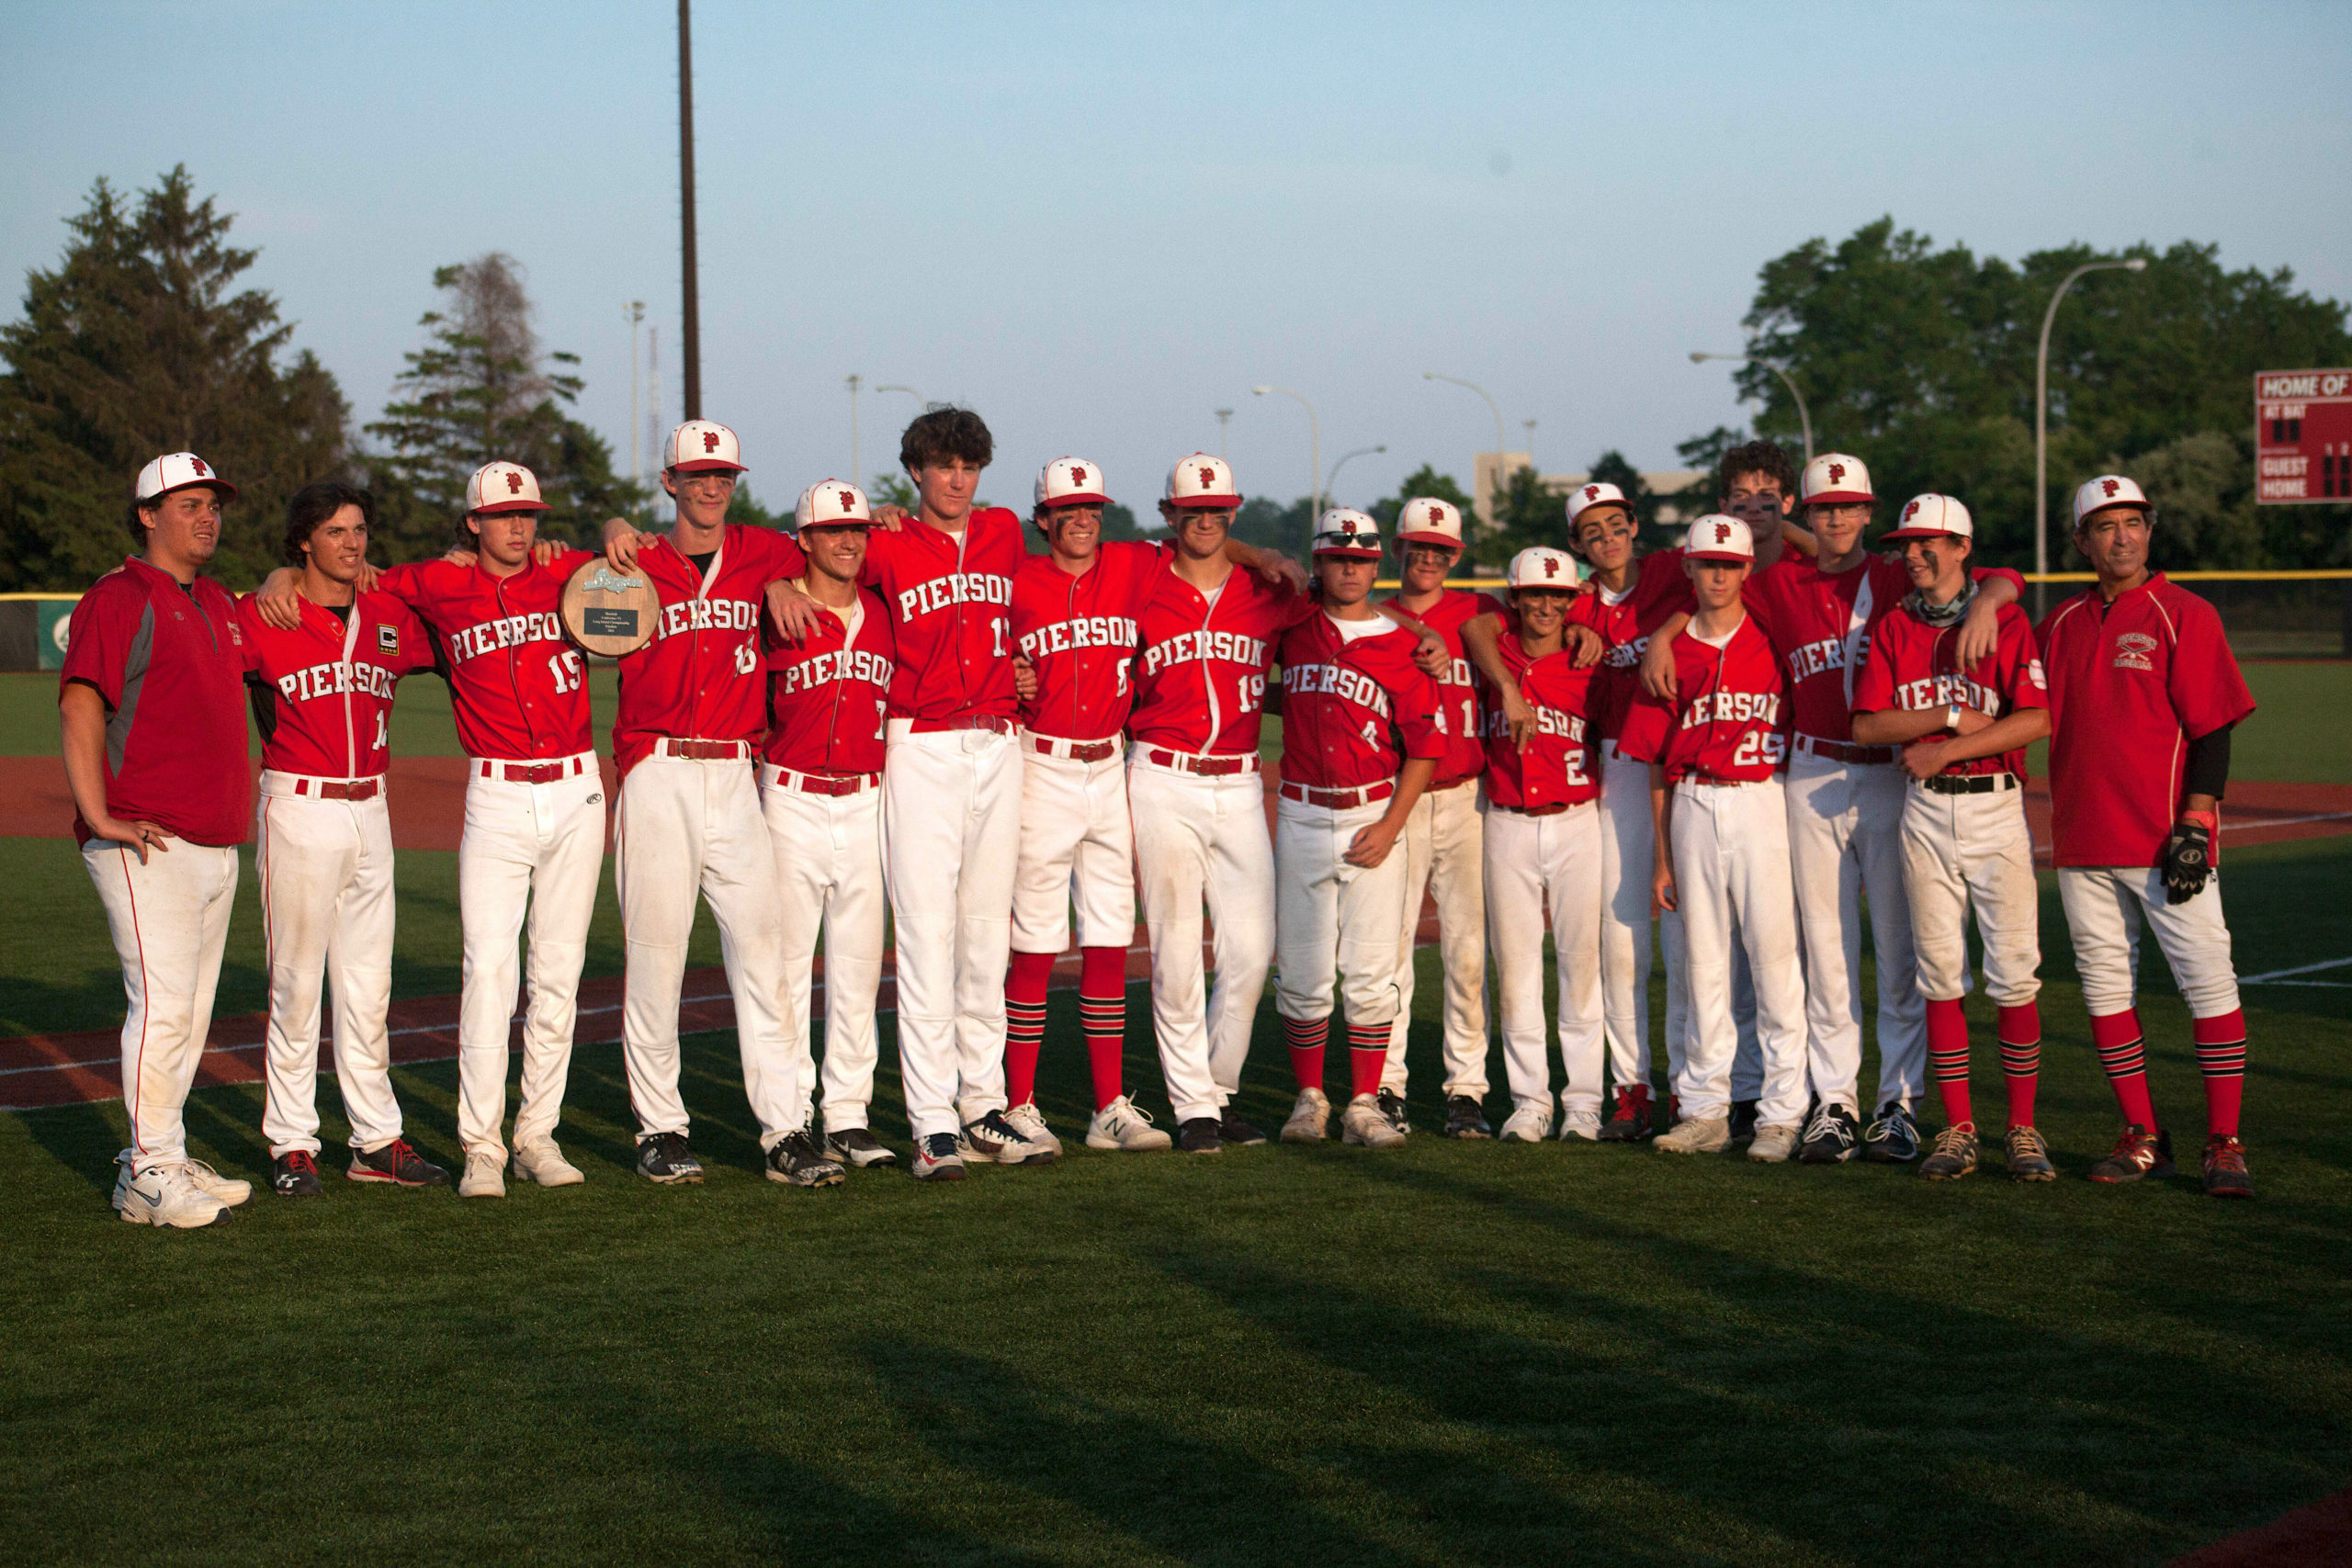 Pierson's baseball team fell 10-3 to Class B's Wheatley in the Long Island Championship game at the Mitchel Athletic Complex in Uniondale.